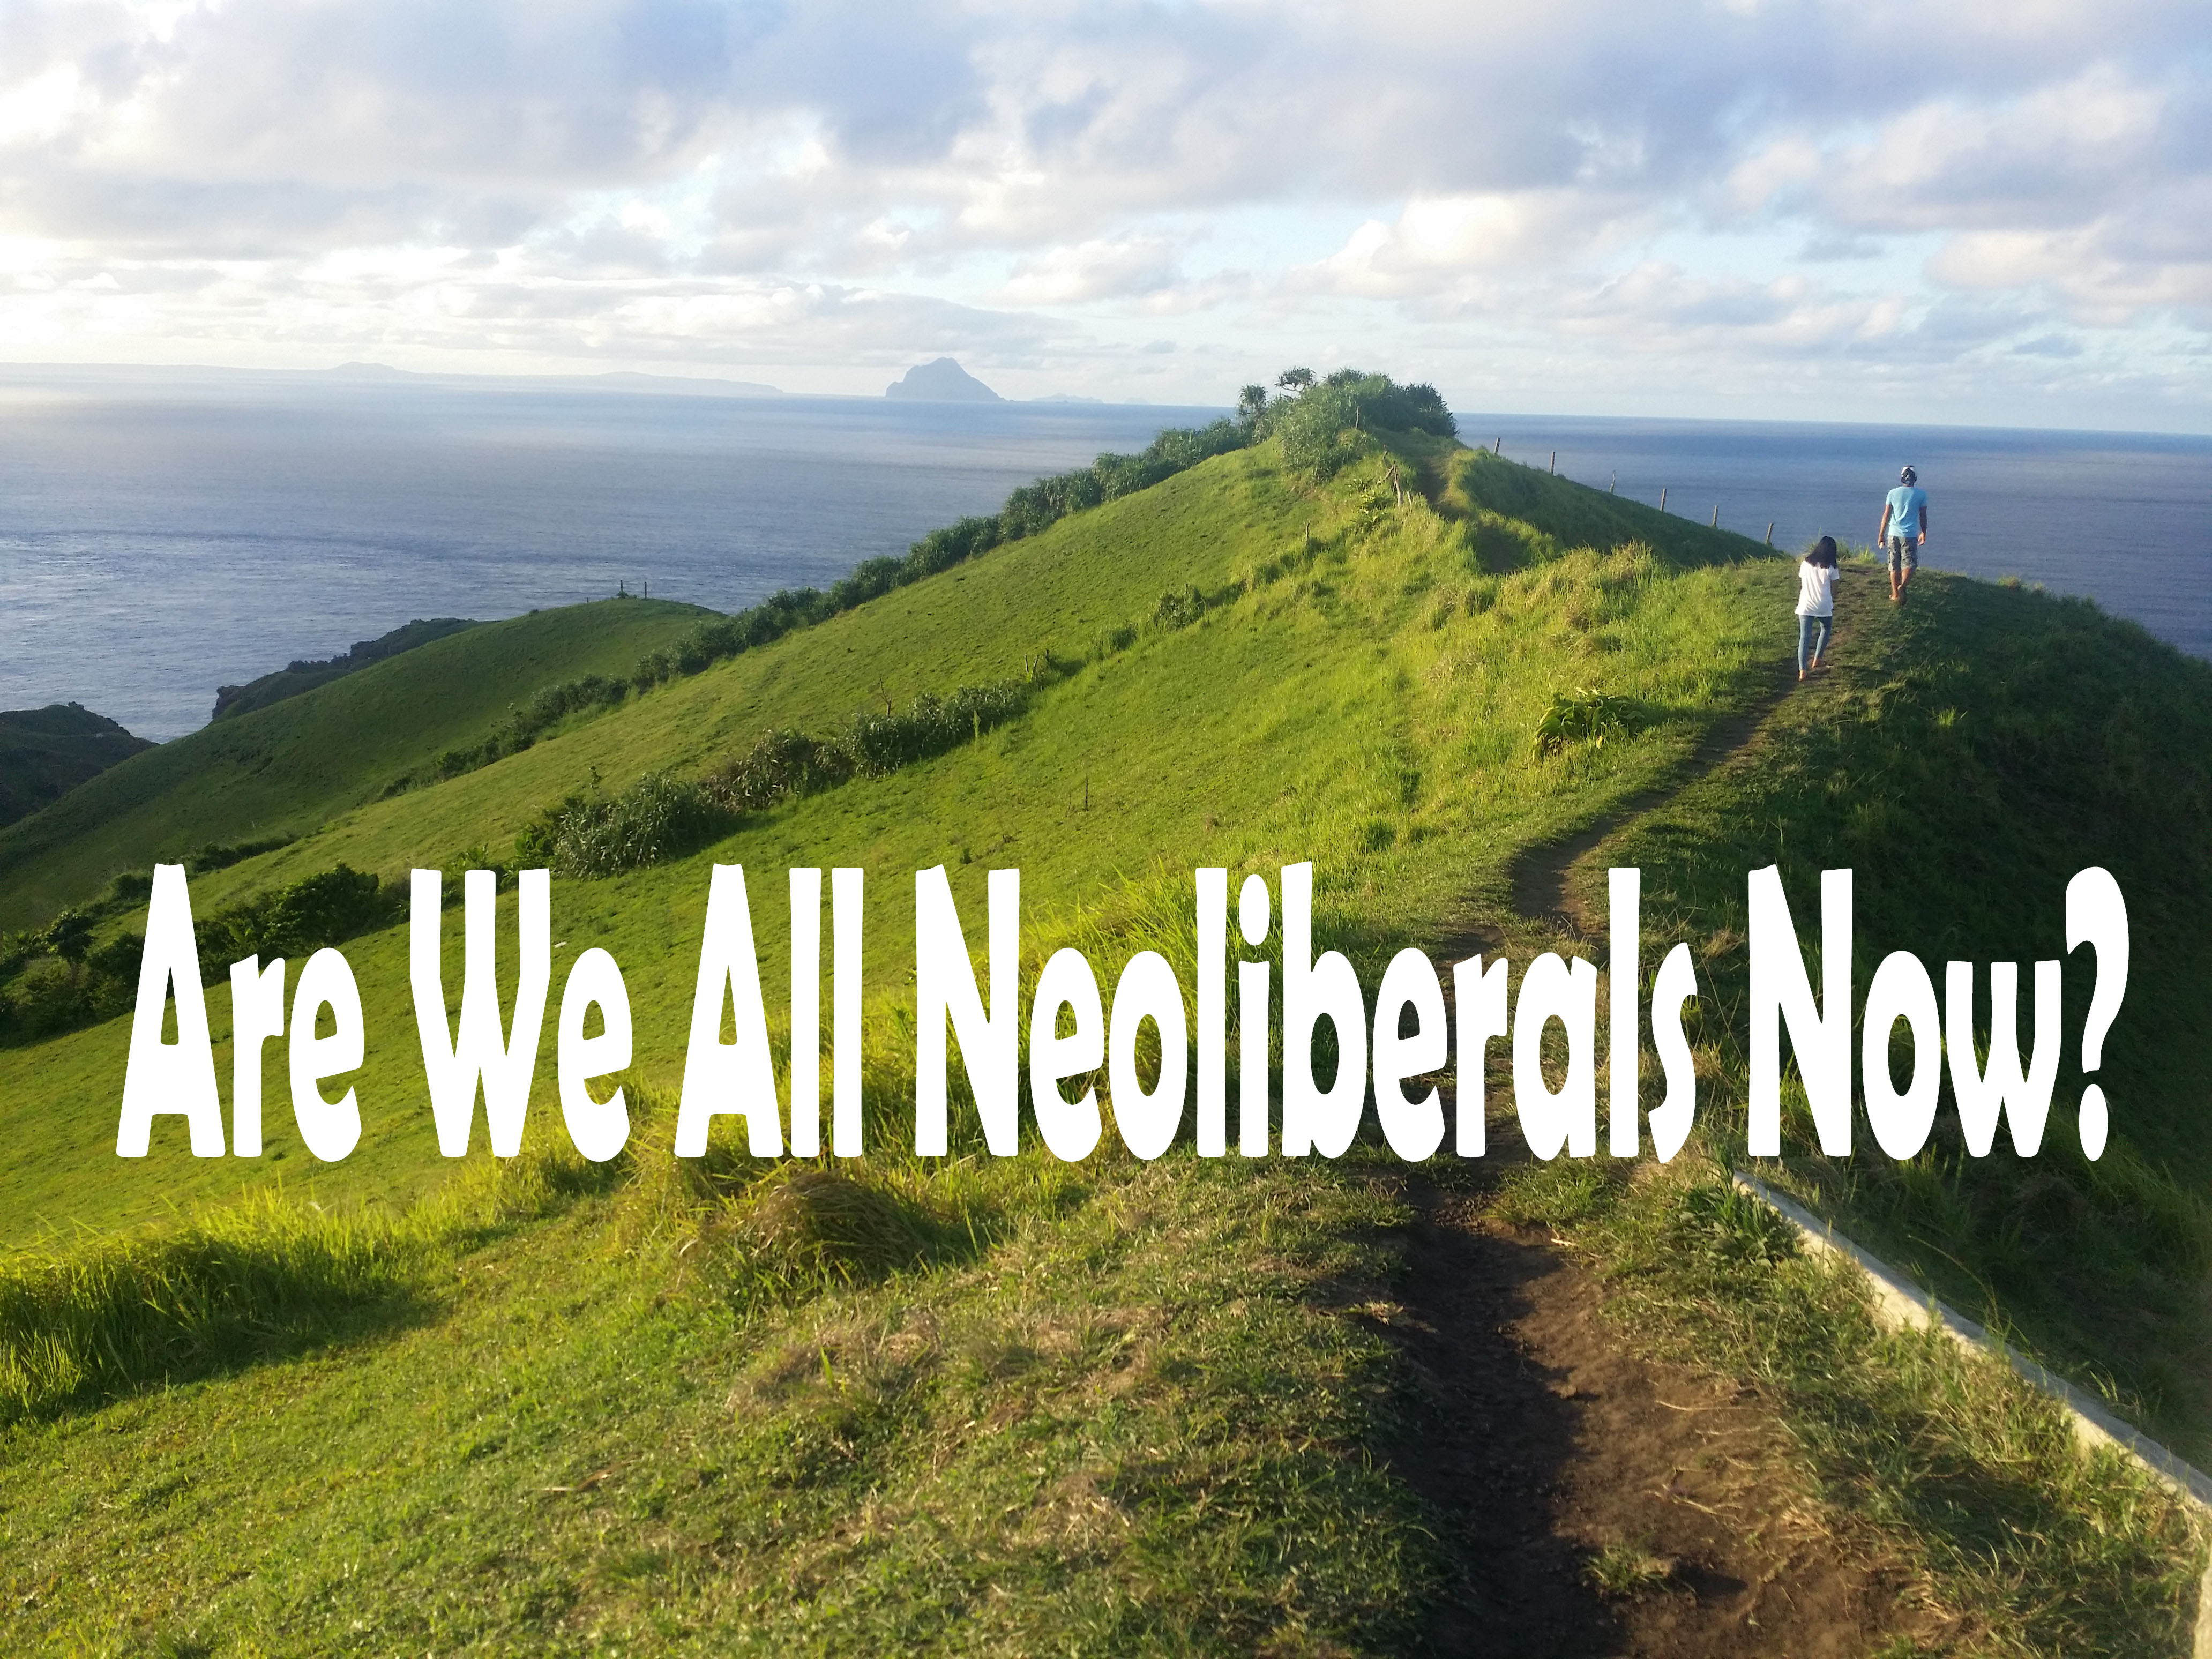 THE INFLUENCE OF NEOLIBERALISM AND ITS EFFECTS IN THE...